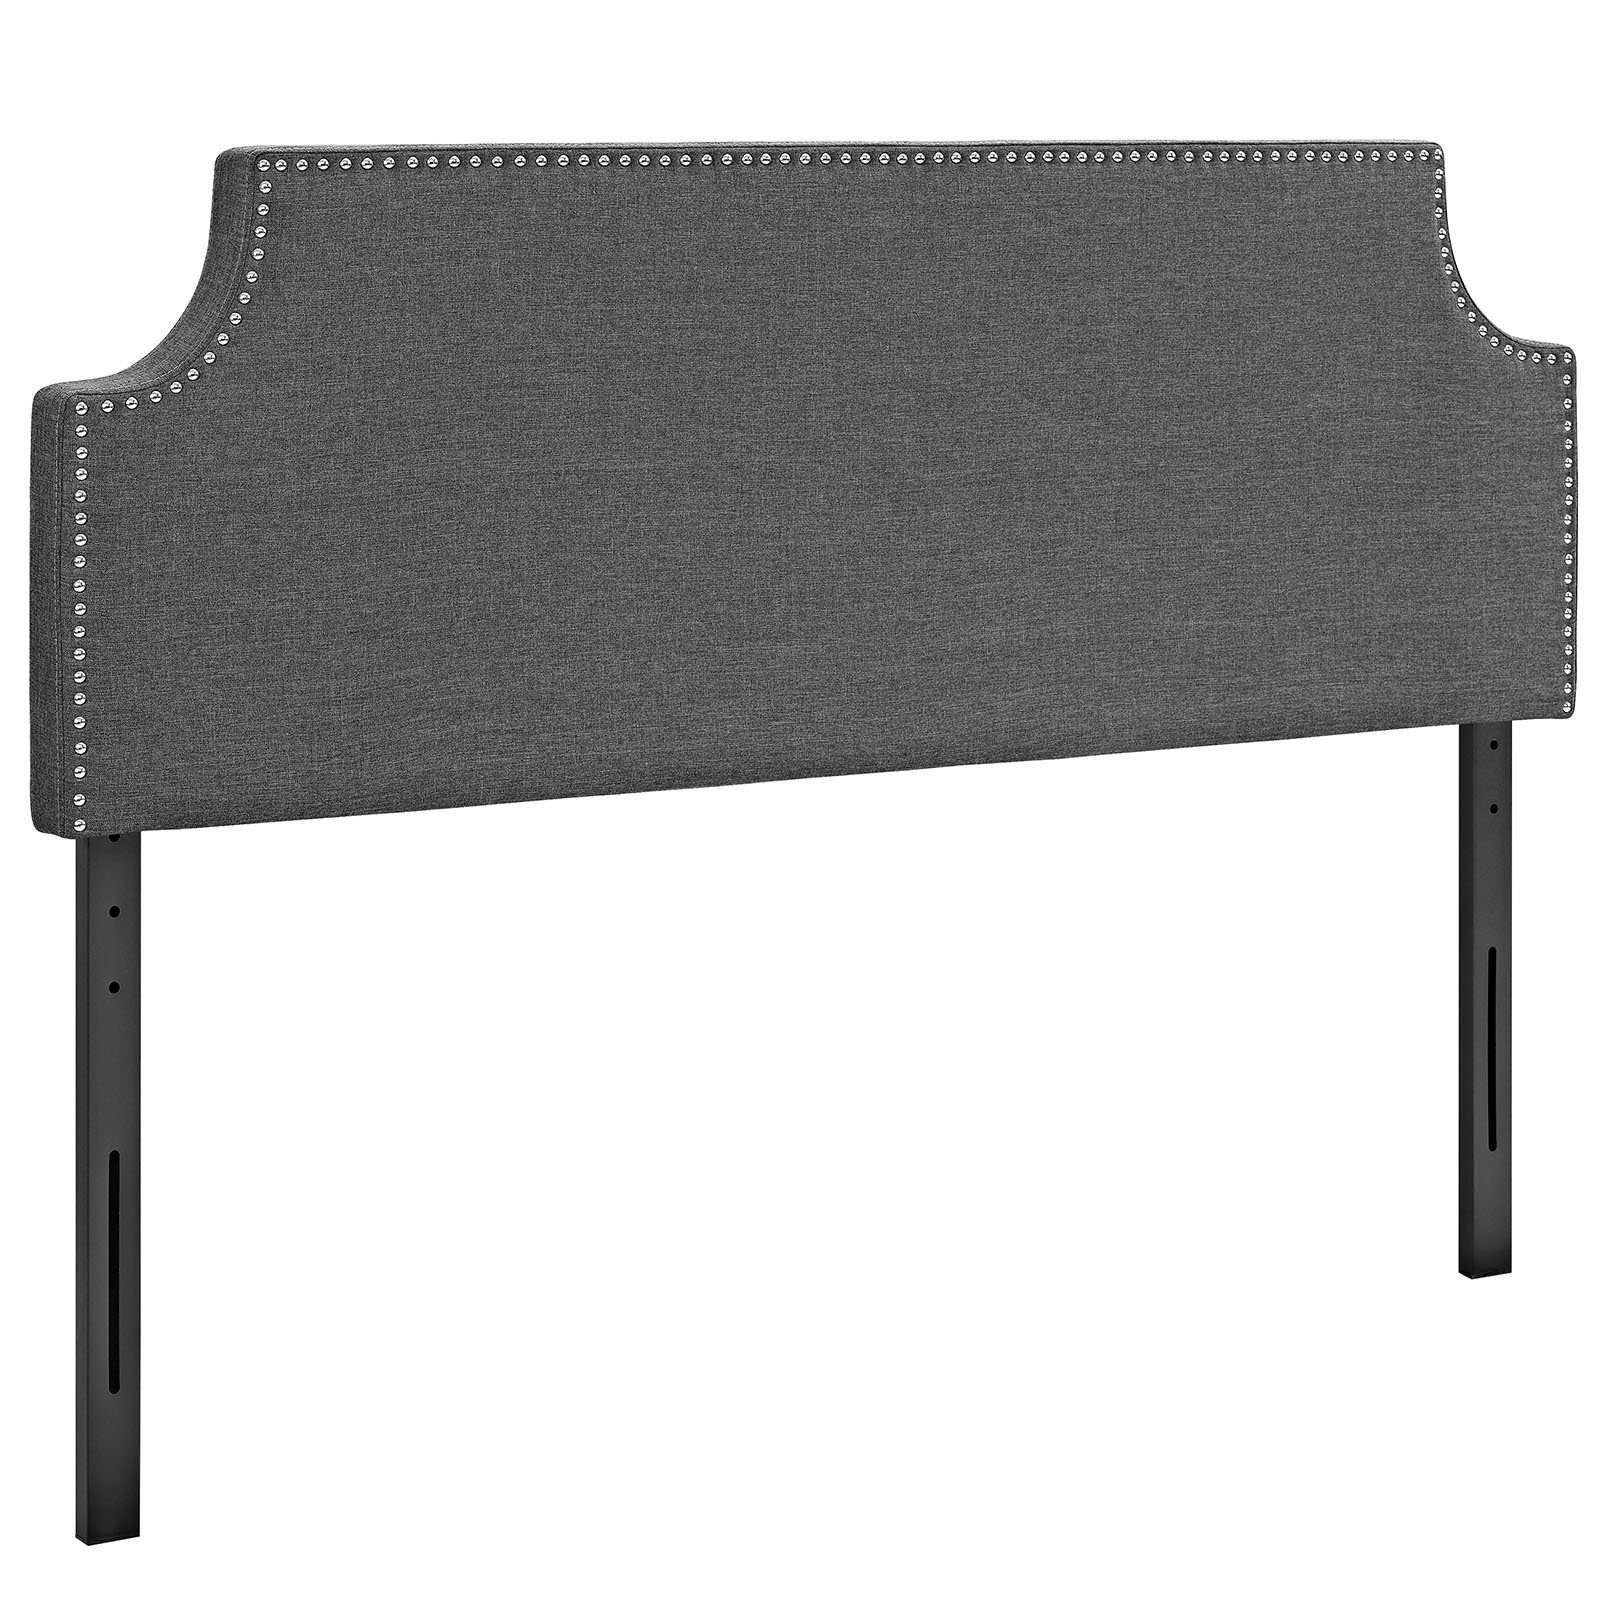 Modway Laura Upholstered Fabric Headboard Full Size With Cut-Out Edges and Nailhead Trim In Gray